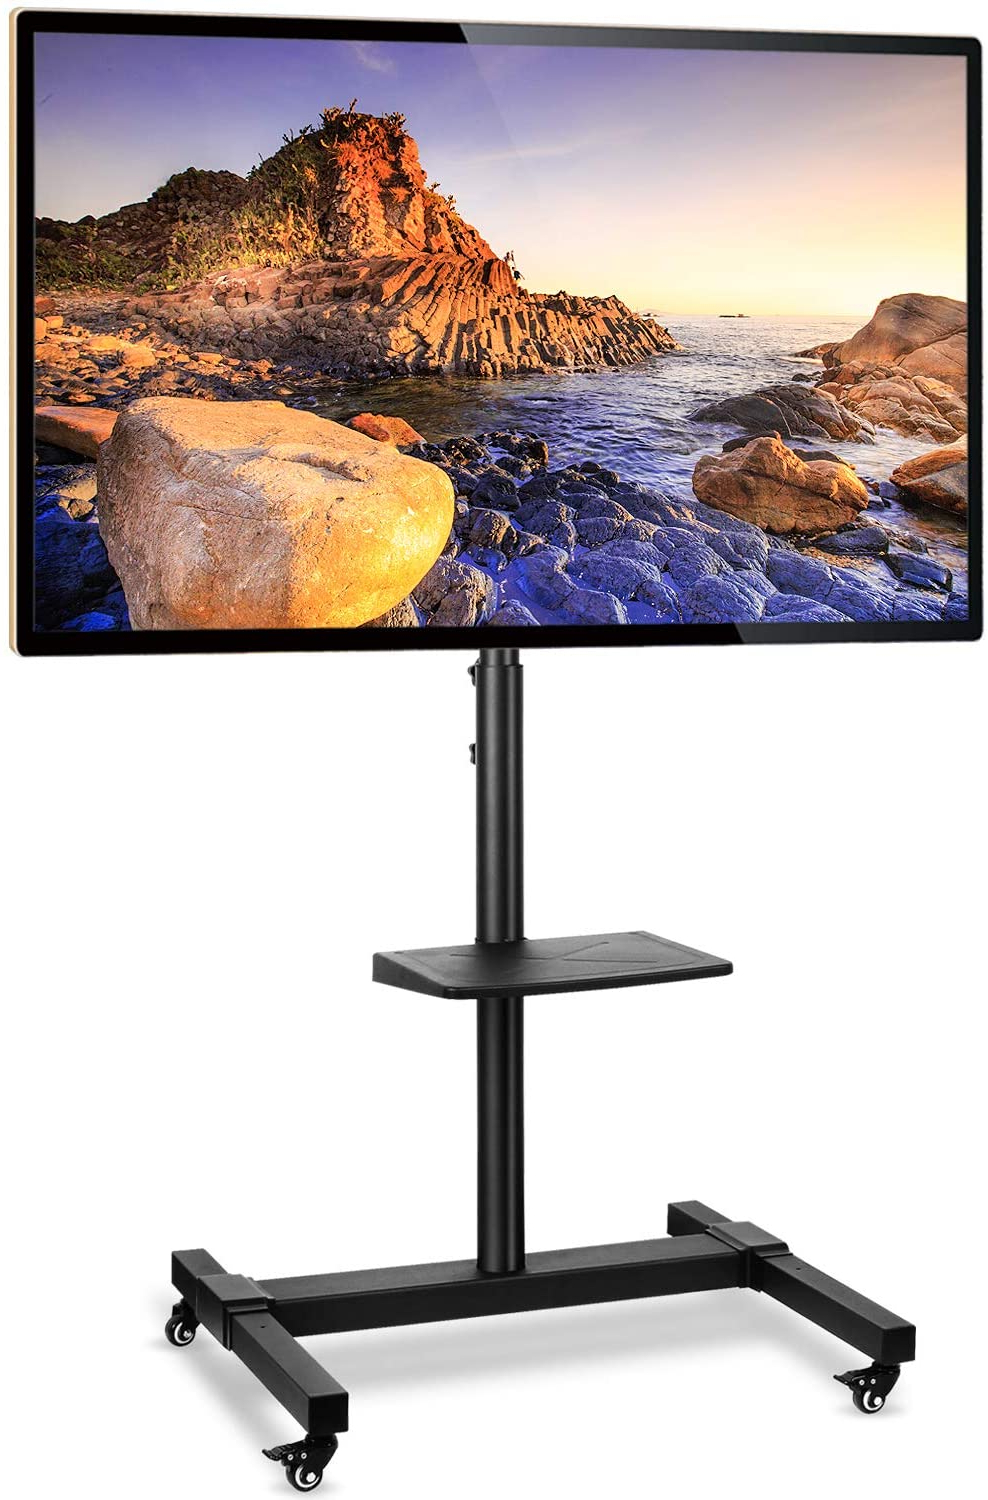 10 Best Rolling Tv Stands In 2020 | Unbiased Review Throughout Rolling Tv Stands With Wheels With Adjustable Metal Shelf (View 16 of 20)